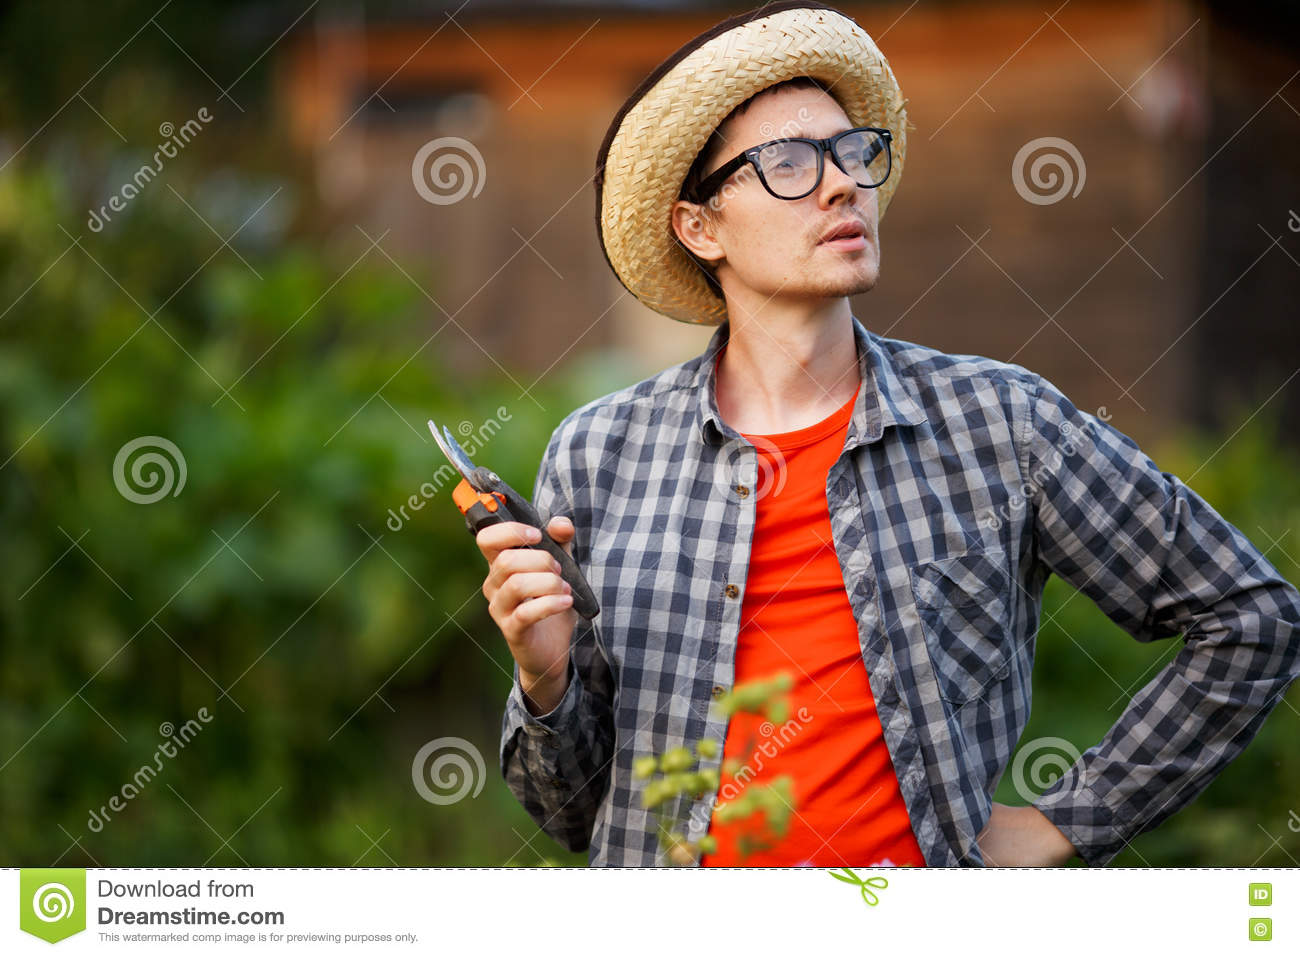 Portrait of gardener young man holding pruning sheers outdoors